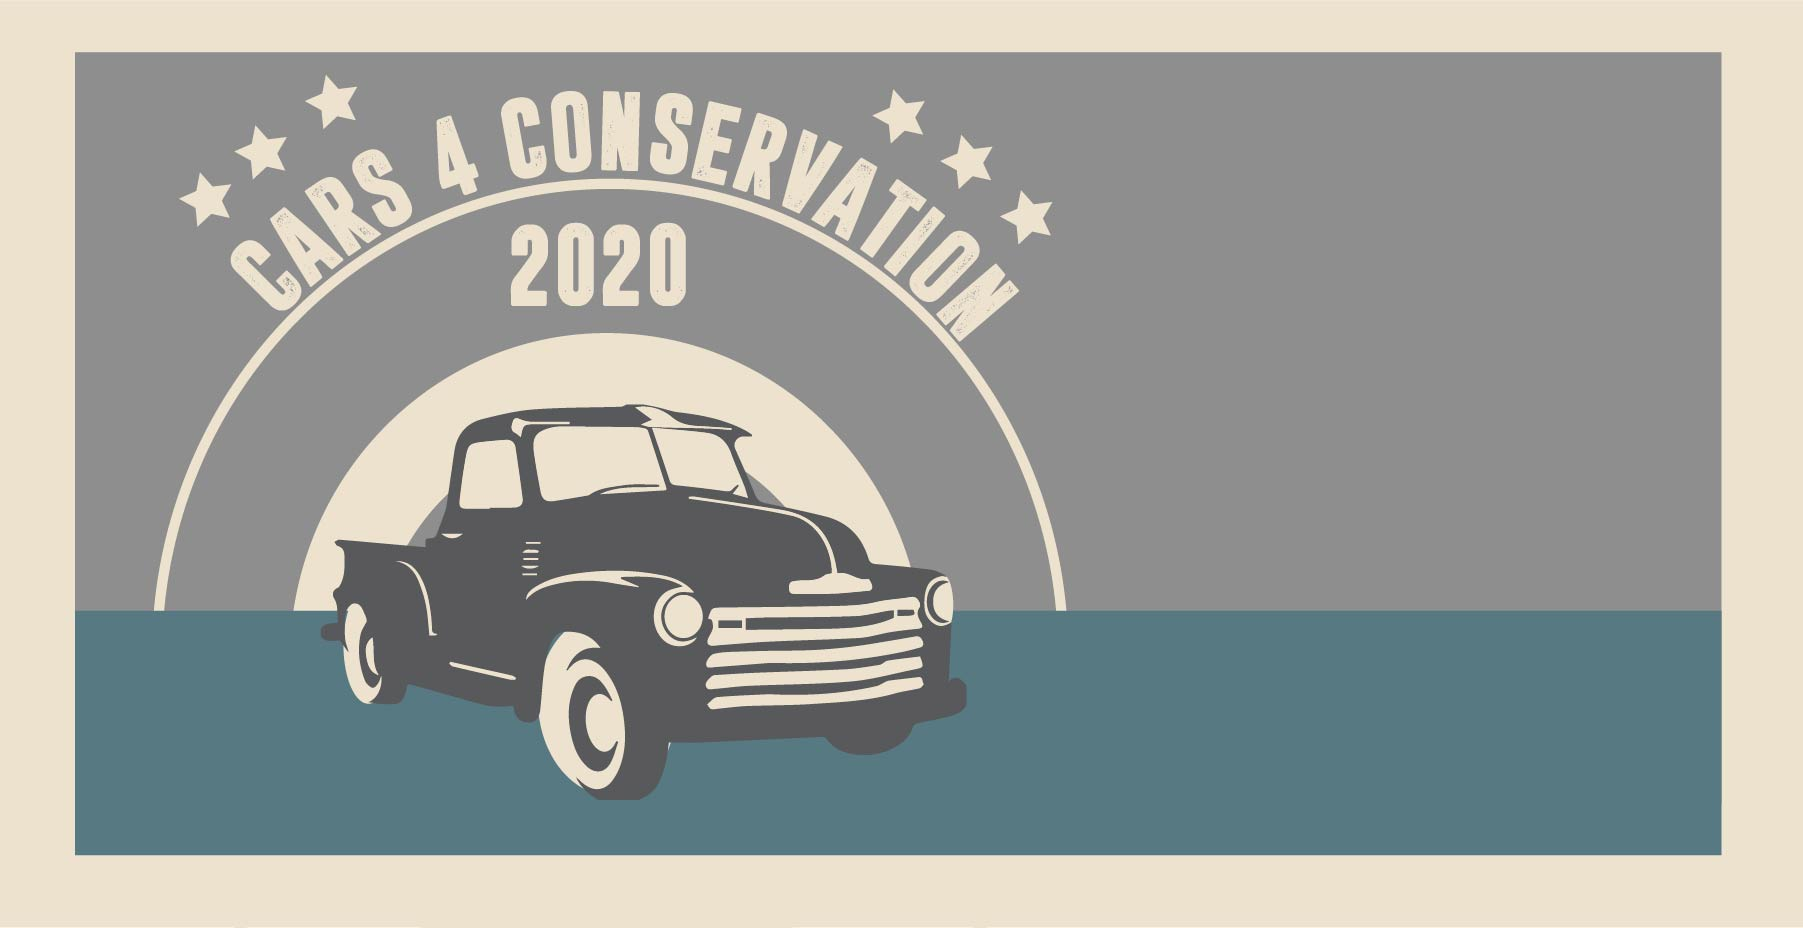 Featured Event Image for Cars 4 Conservation